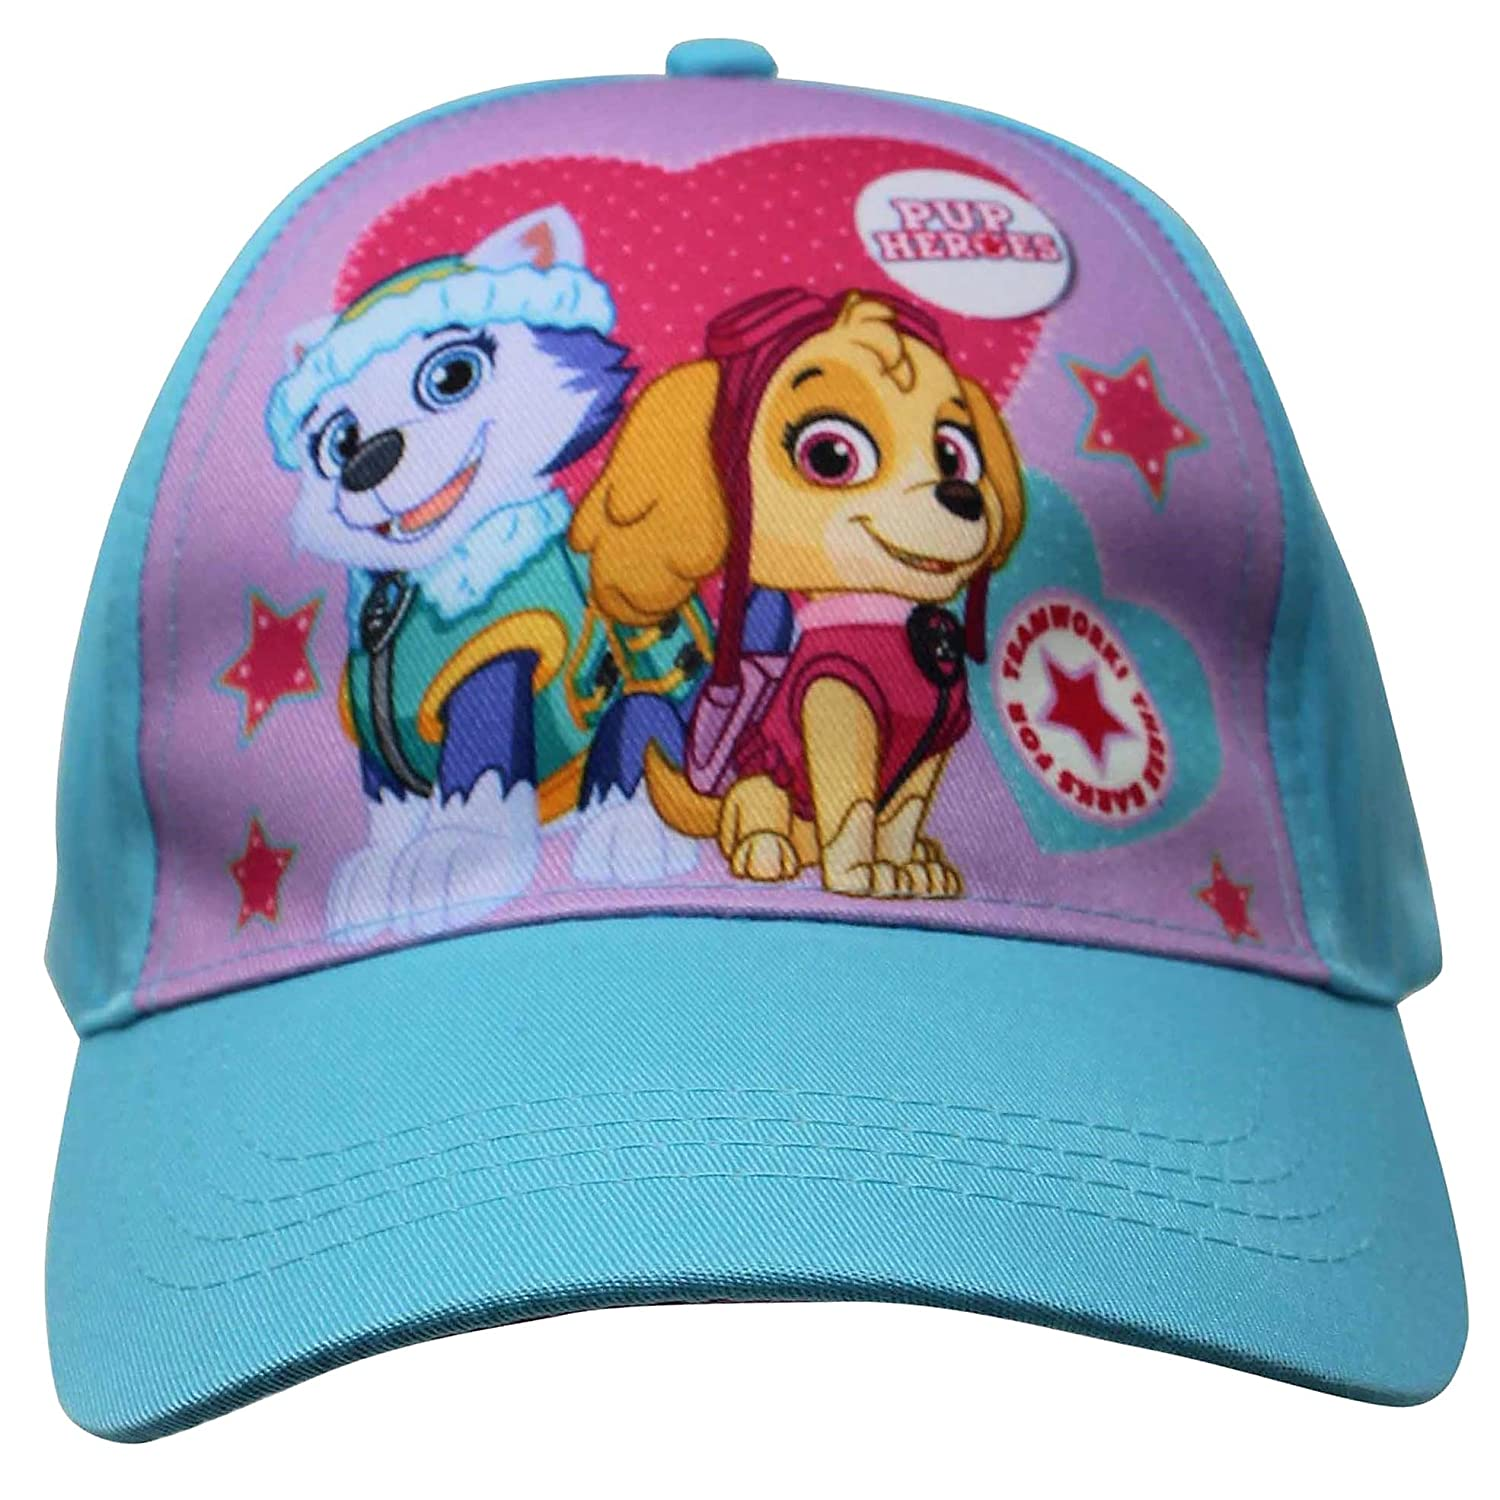 new product 5ff69 b5c8c Accessory Supply Officially Licenesed Paw Patrol Pup Heroes Hat With  Everest and Skye For Girls